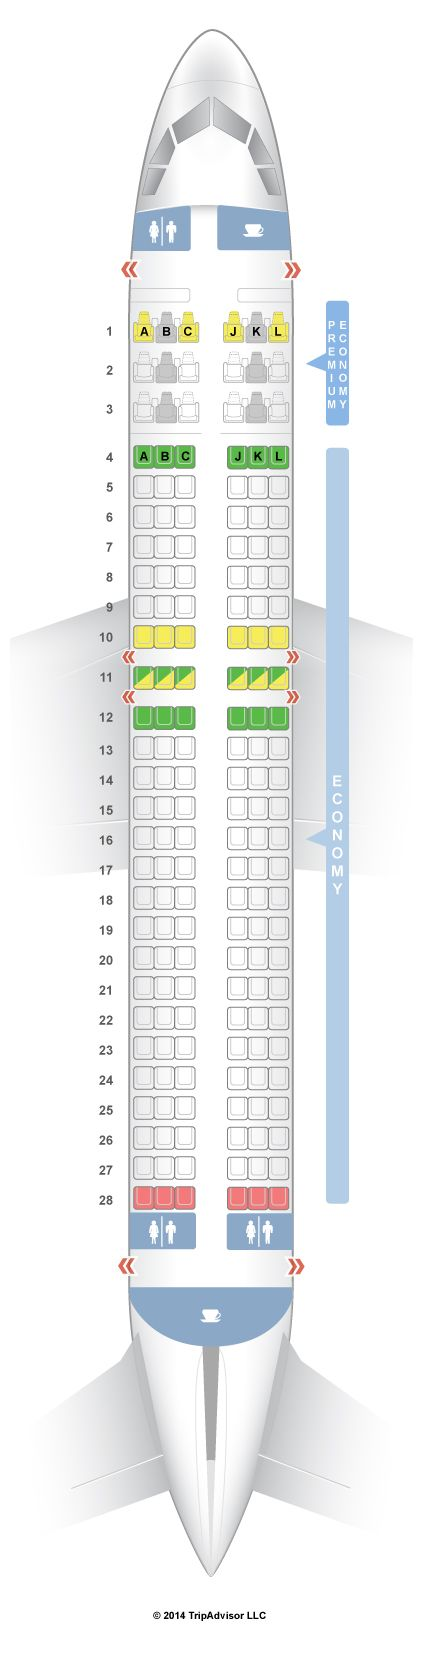 Seatguru Seat Map Latam Chile Airbus A320 320 V2 Seatguru Ryanair Qatar Airways